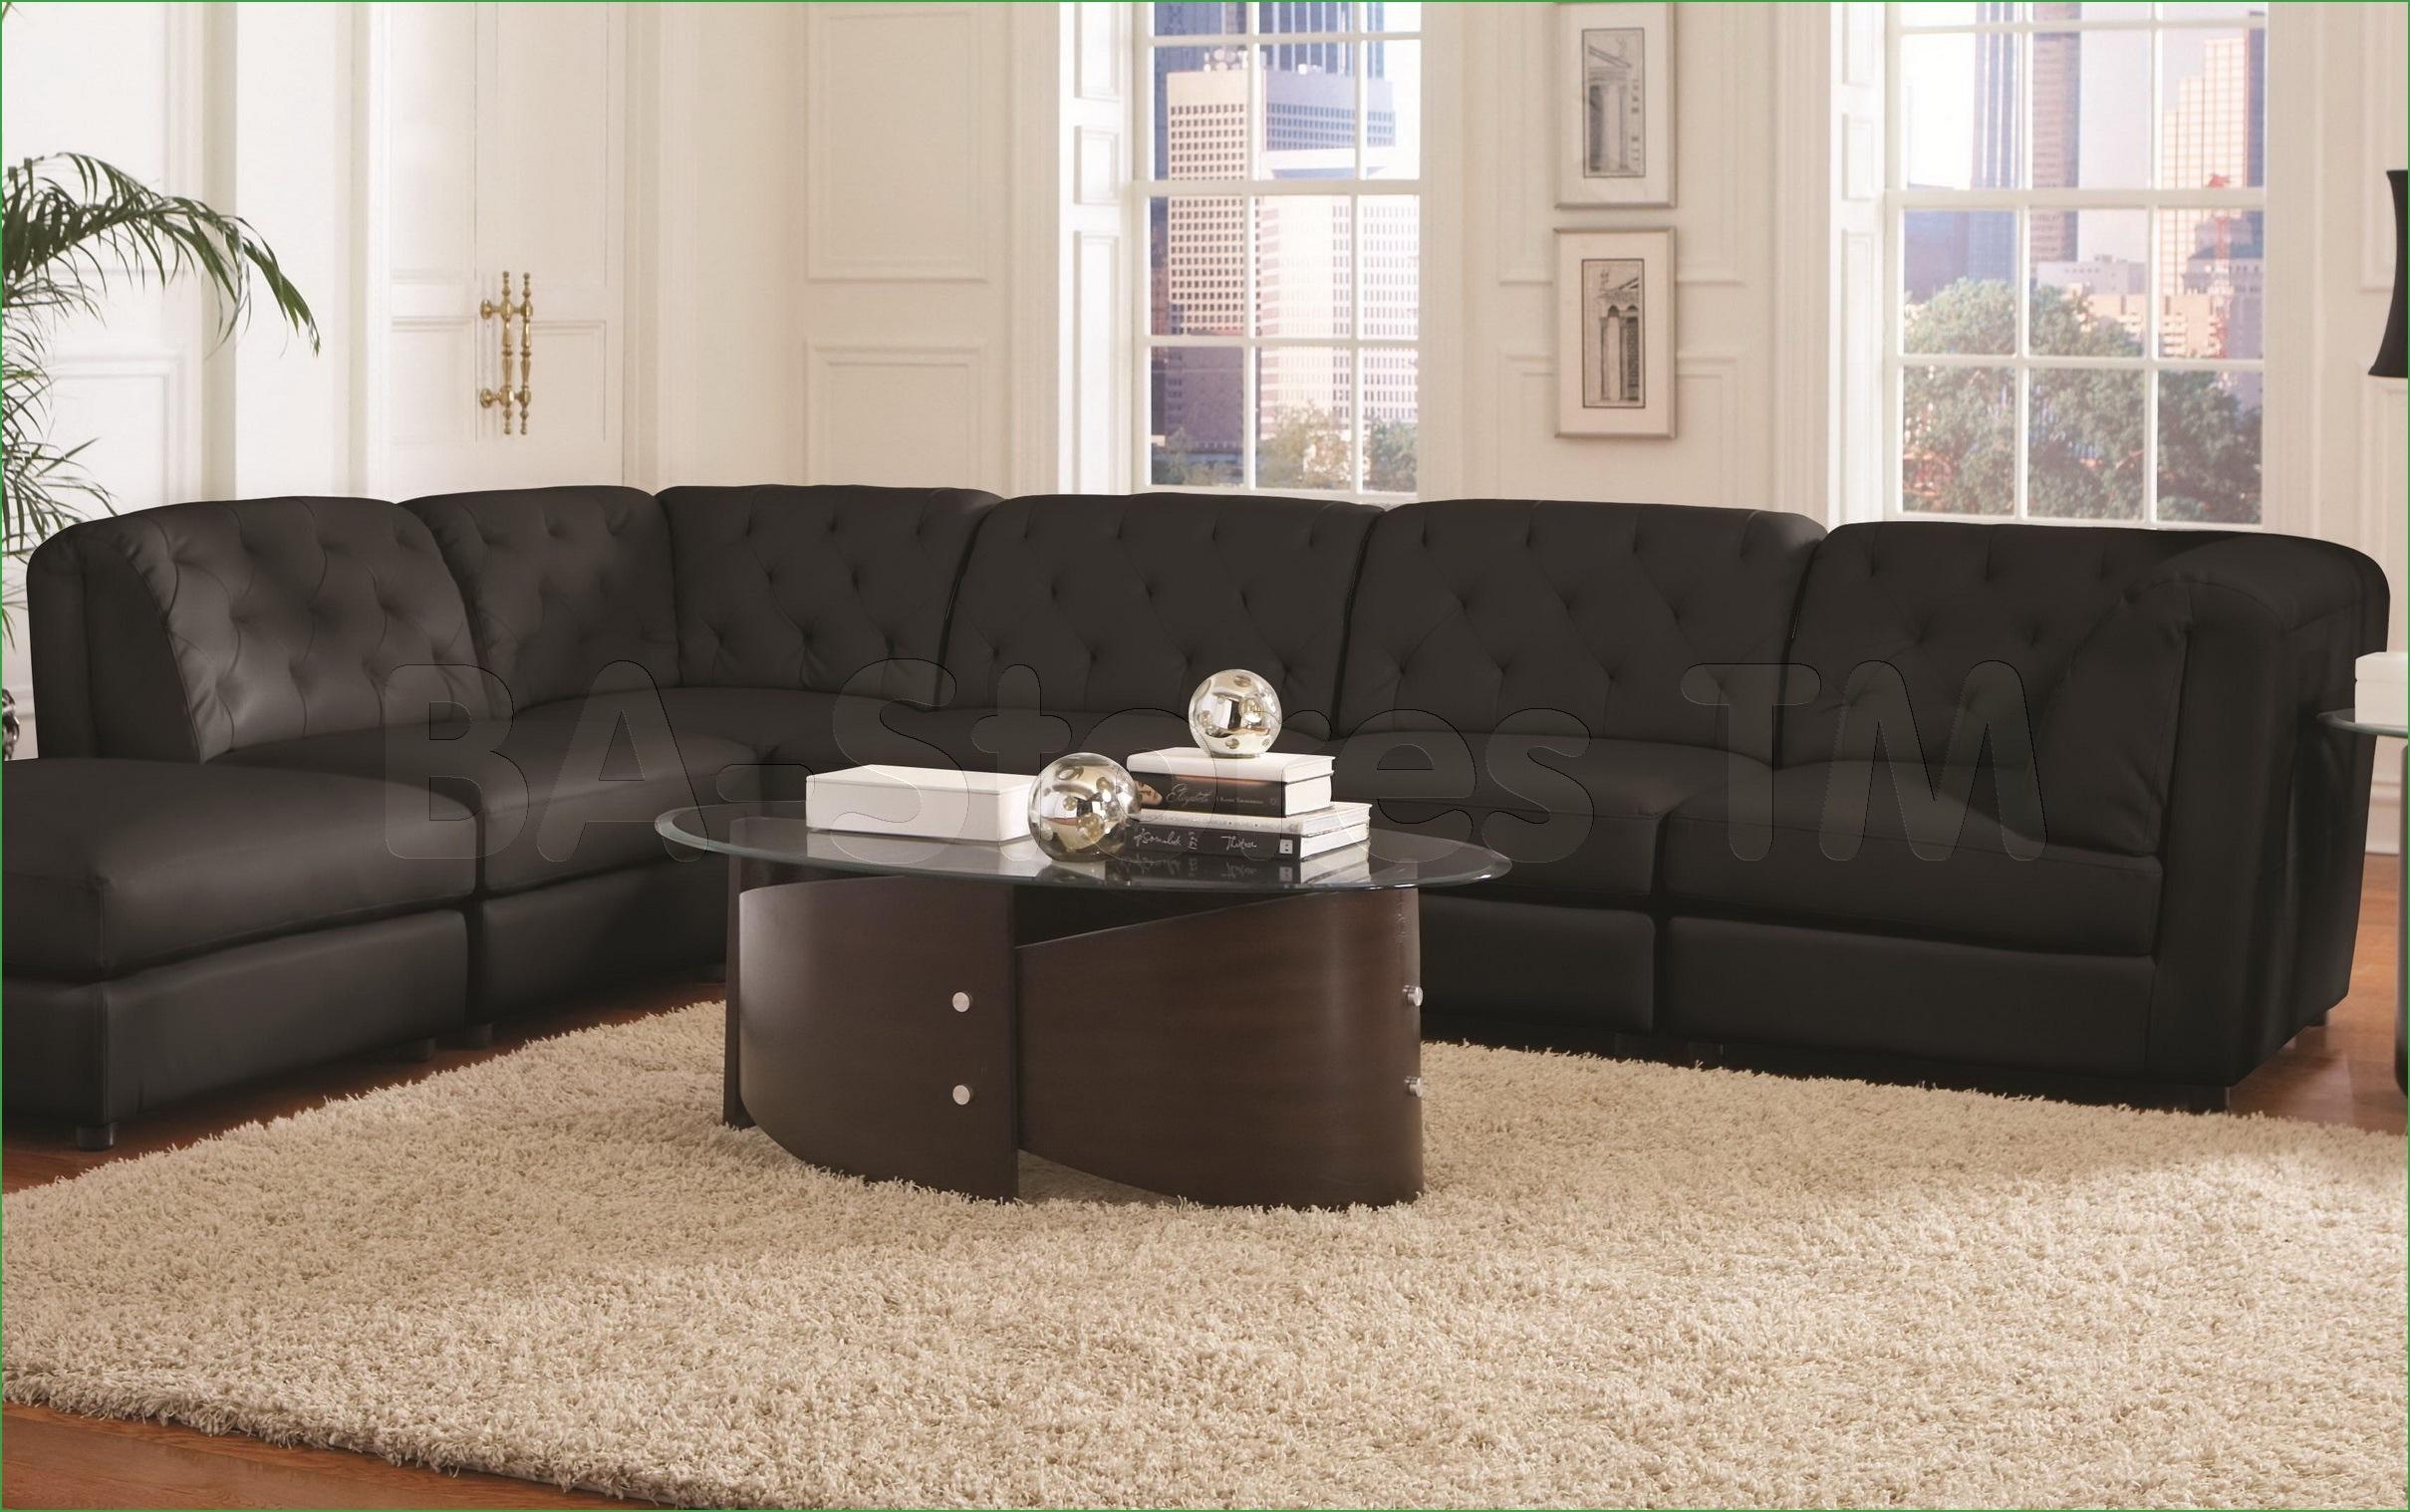 Sofa : Queen Sofa Sleeper Sectional Microfiber Decoration Ideas For Queen Sofa Sleeper Sectional Microfiber (View 8 of 20)